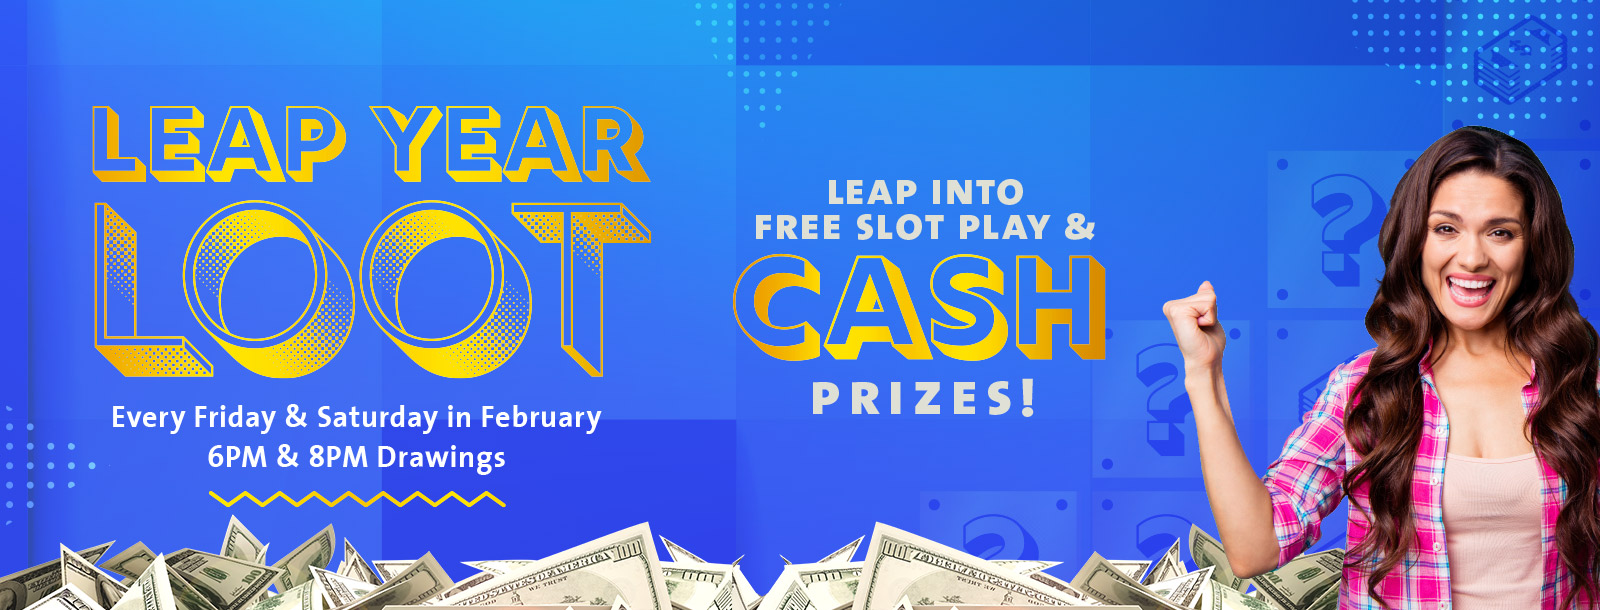 leap year loot casino promotion